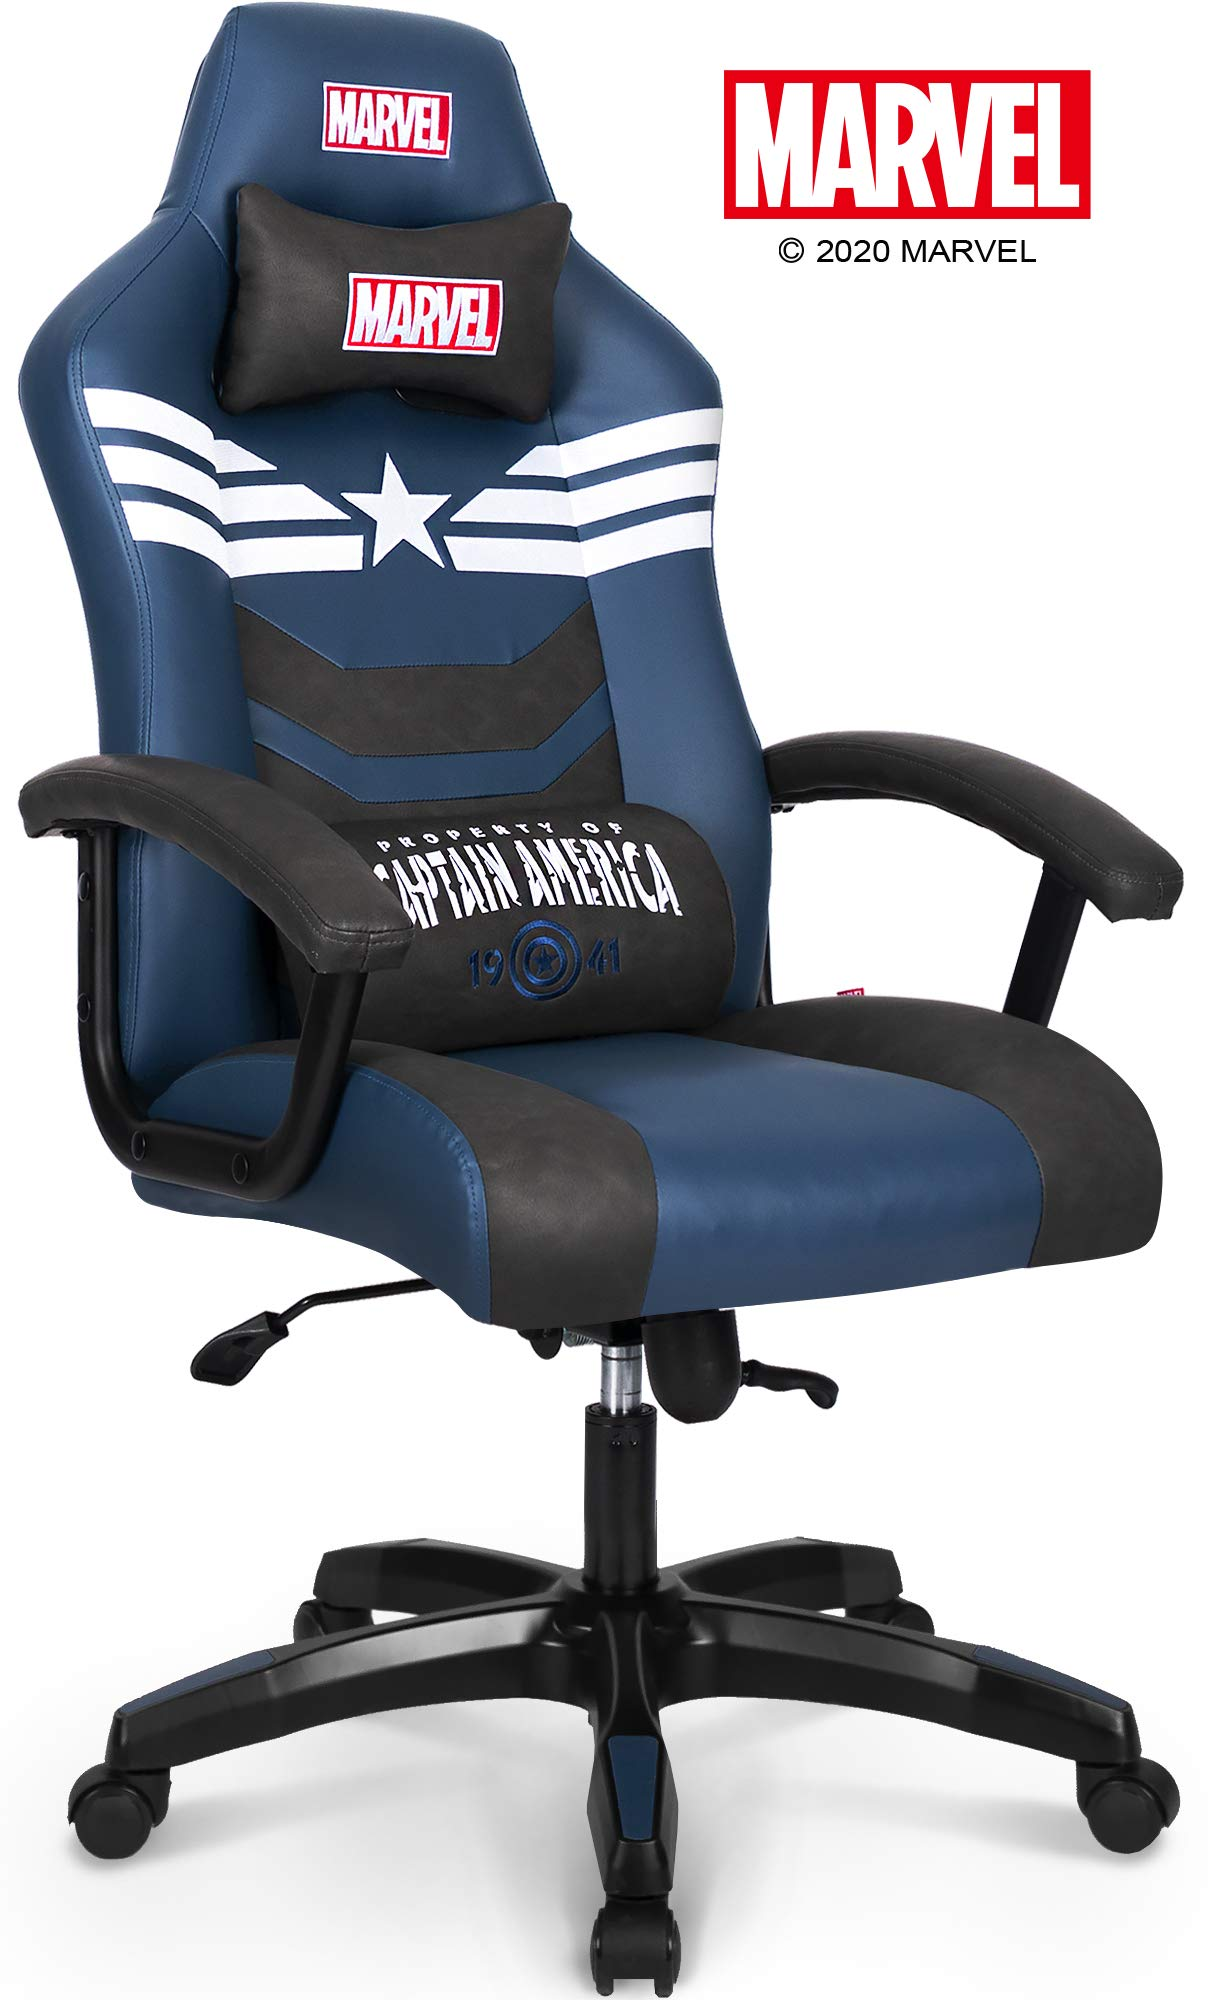 Marvel Avengers Captain America Big Wide Heavy Duty 330 Lbs Gaming Chair Office Chair Computer Racing Desk Chair Blue White Endgame Infinity War Series Marvel Legends